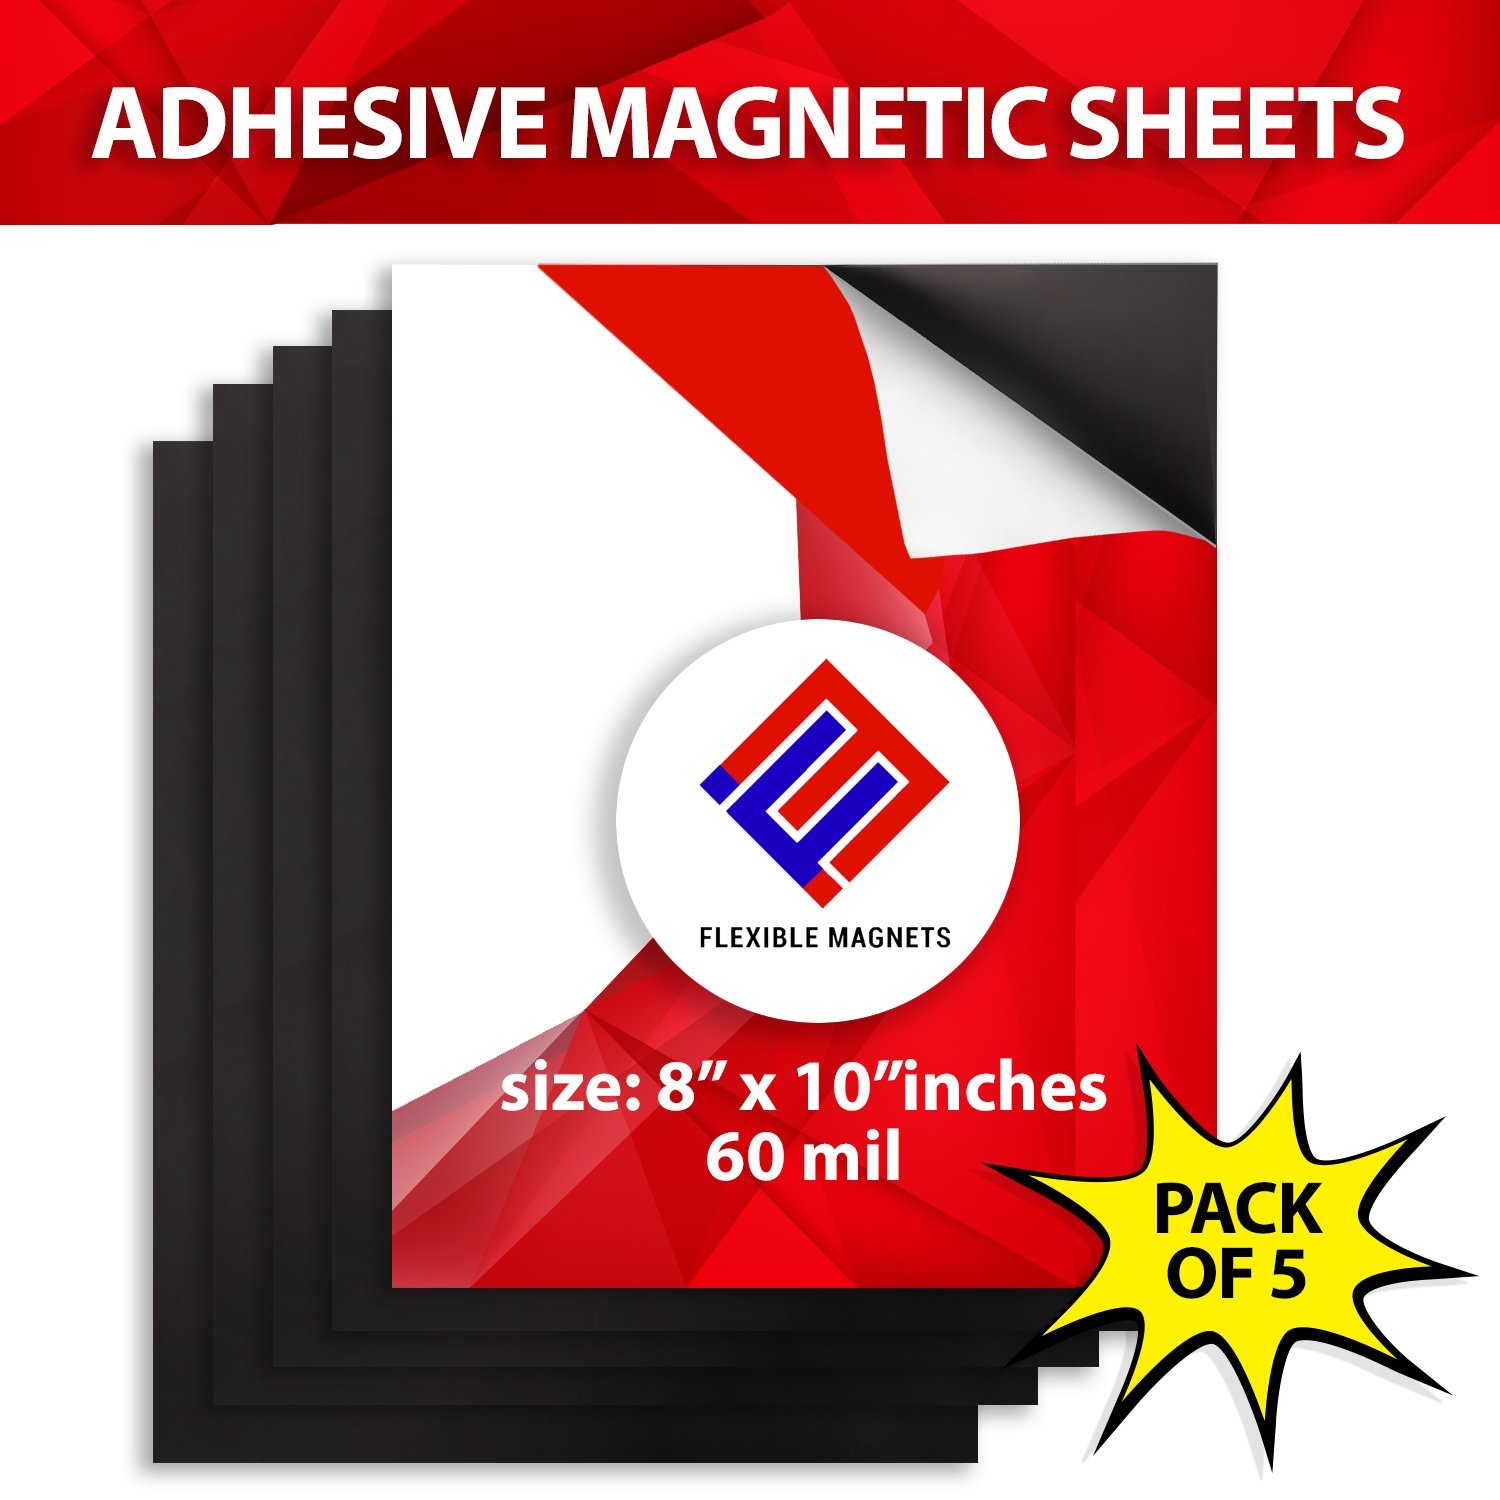 5 Adhesive Magnetic Sheets of 8'' x 10'' - 60 mil Magnet - Ultra Thick